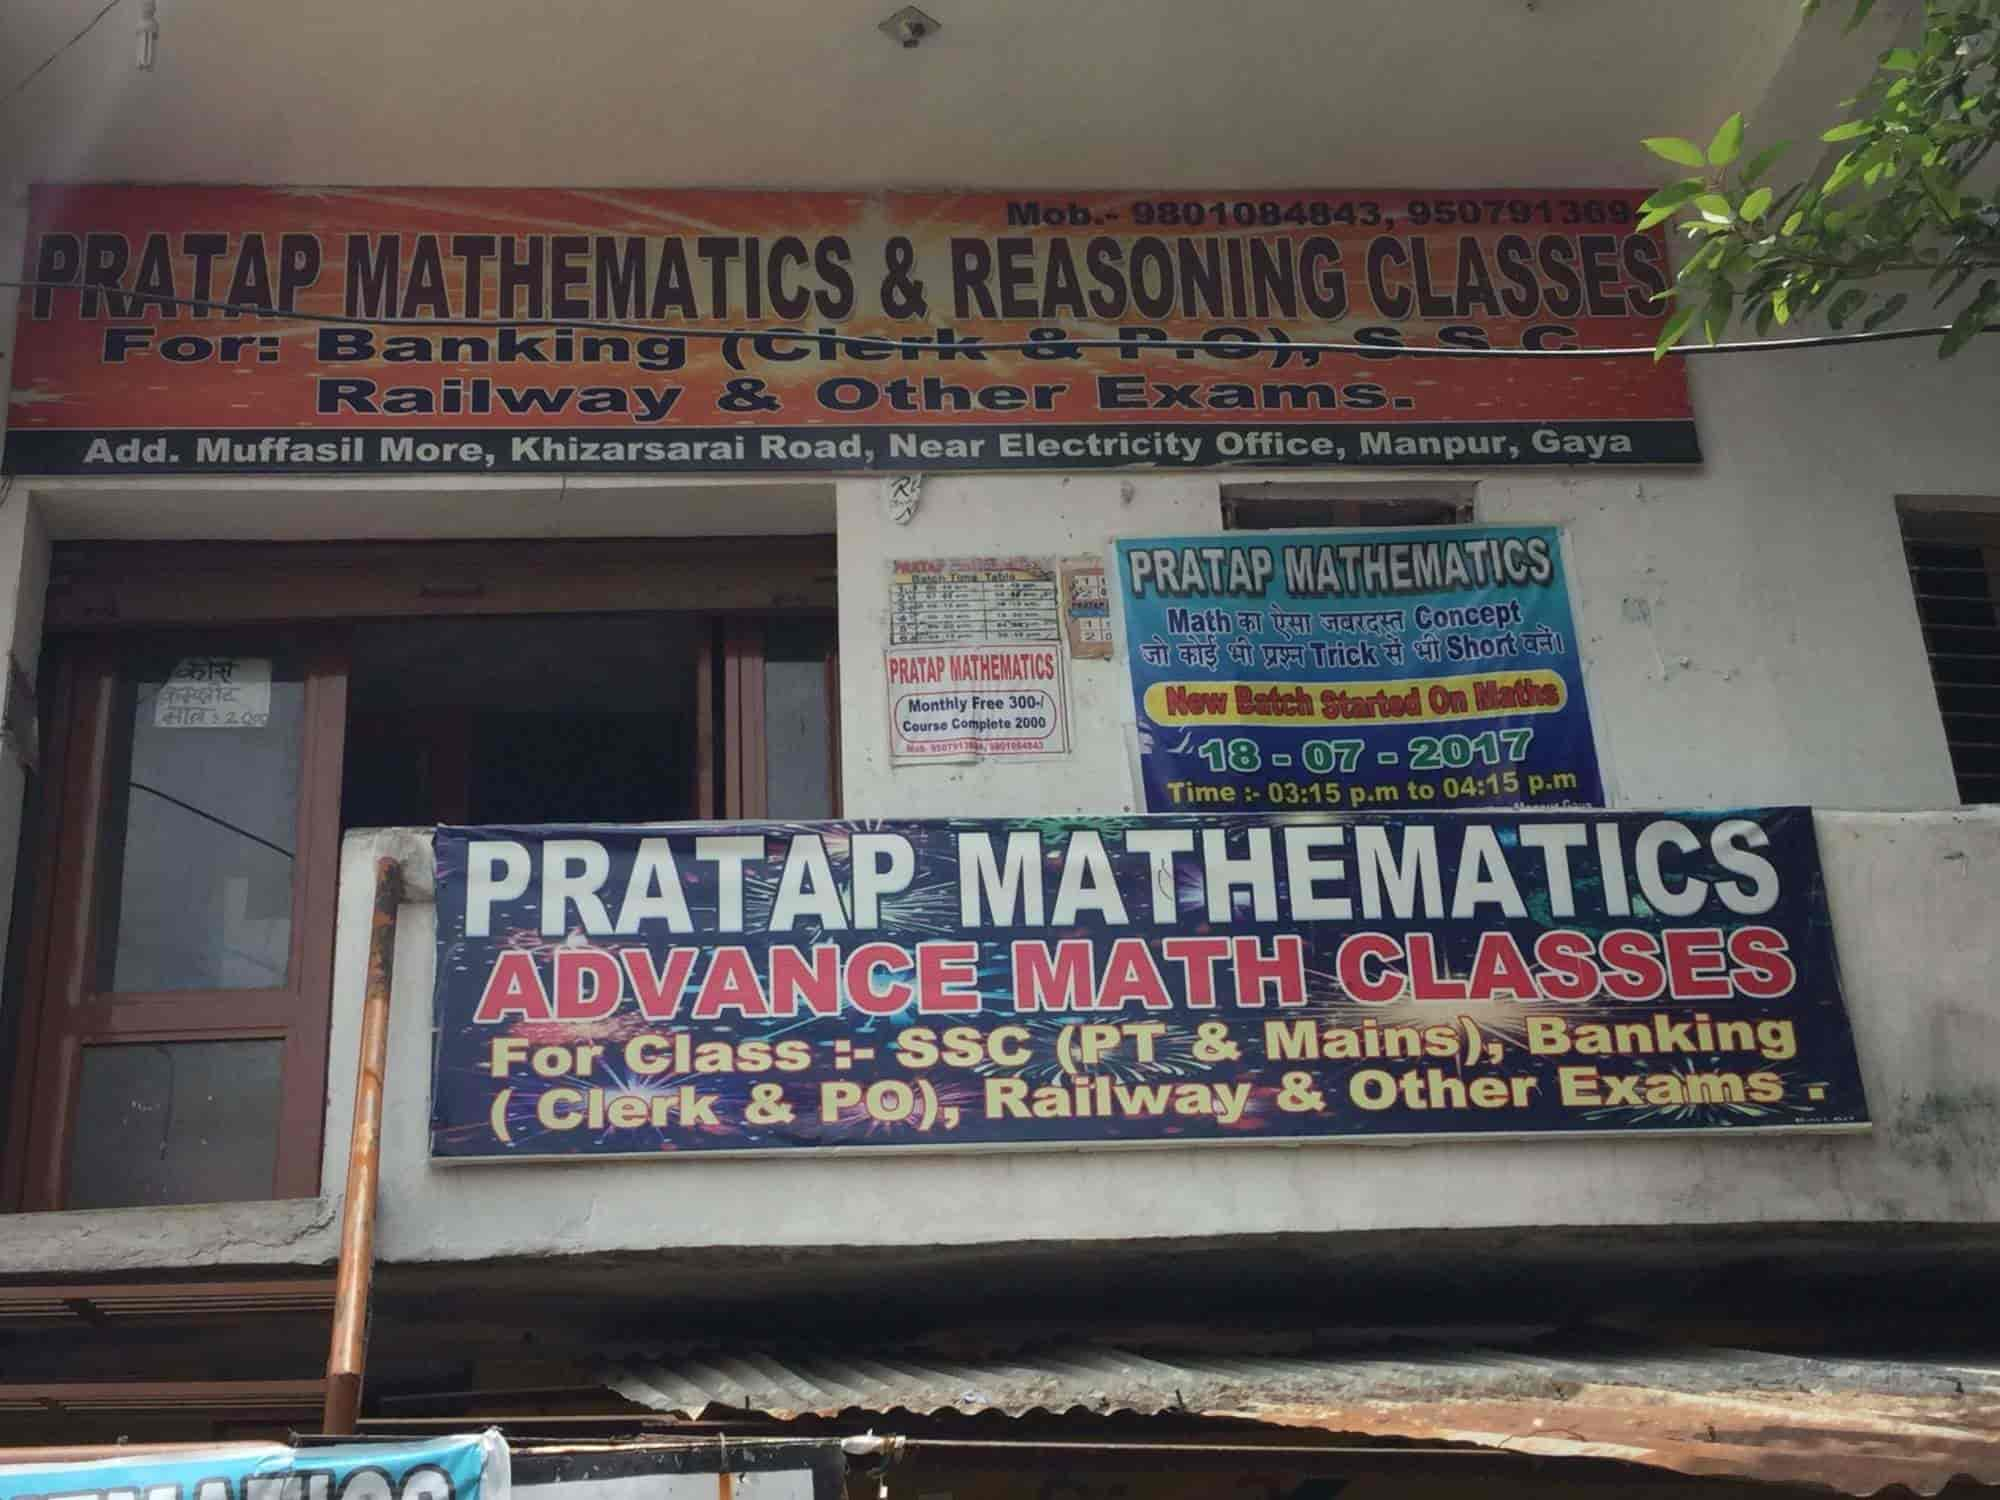 Pratap Mathematics Photos, Manpur, Gaya- Pictures & Images Gallery ...